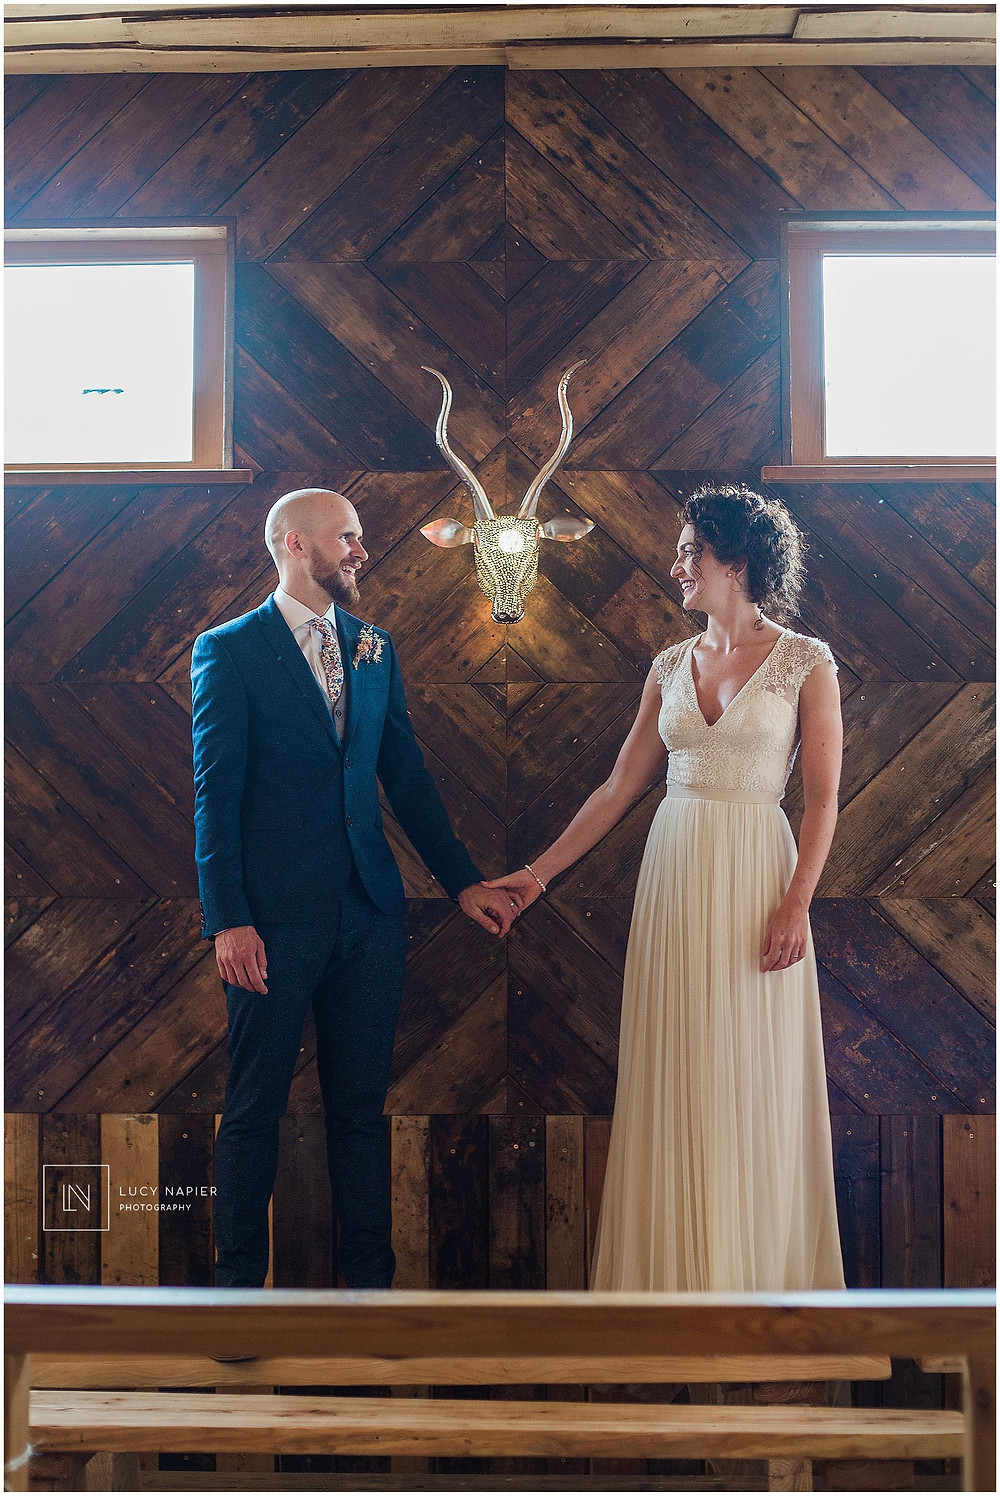 Bridal Portraits in the ceremony room Owen house Wedding Barn